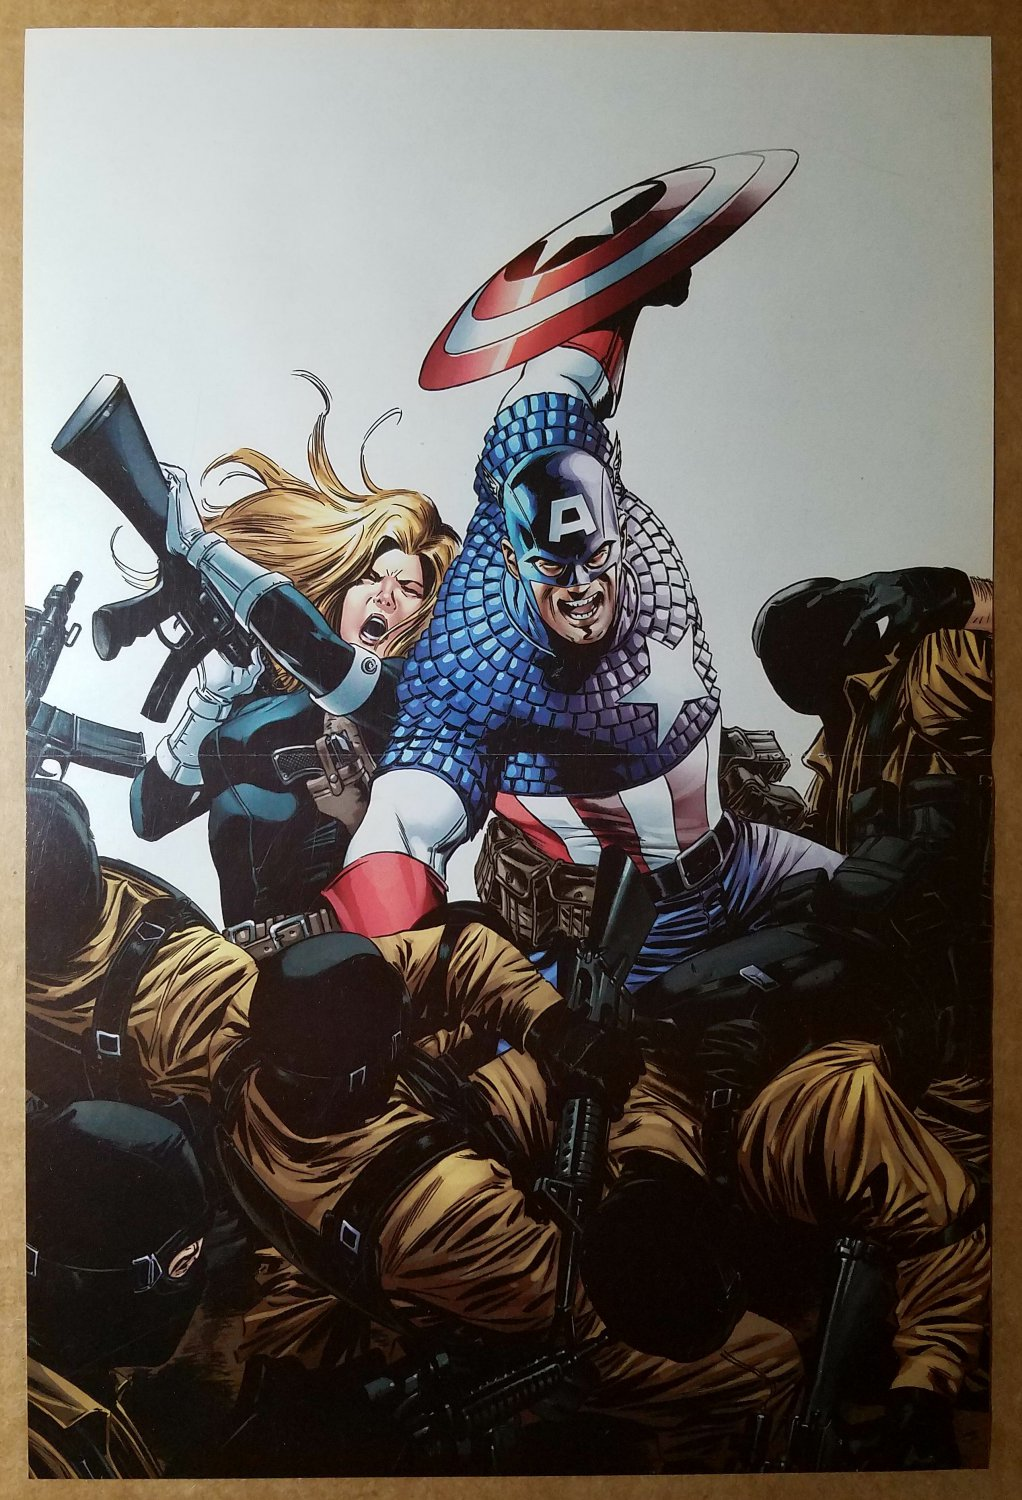 Avengers Captain America Marvel Comic Poster by Steve Epting